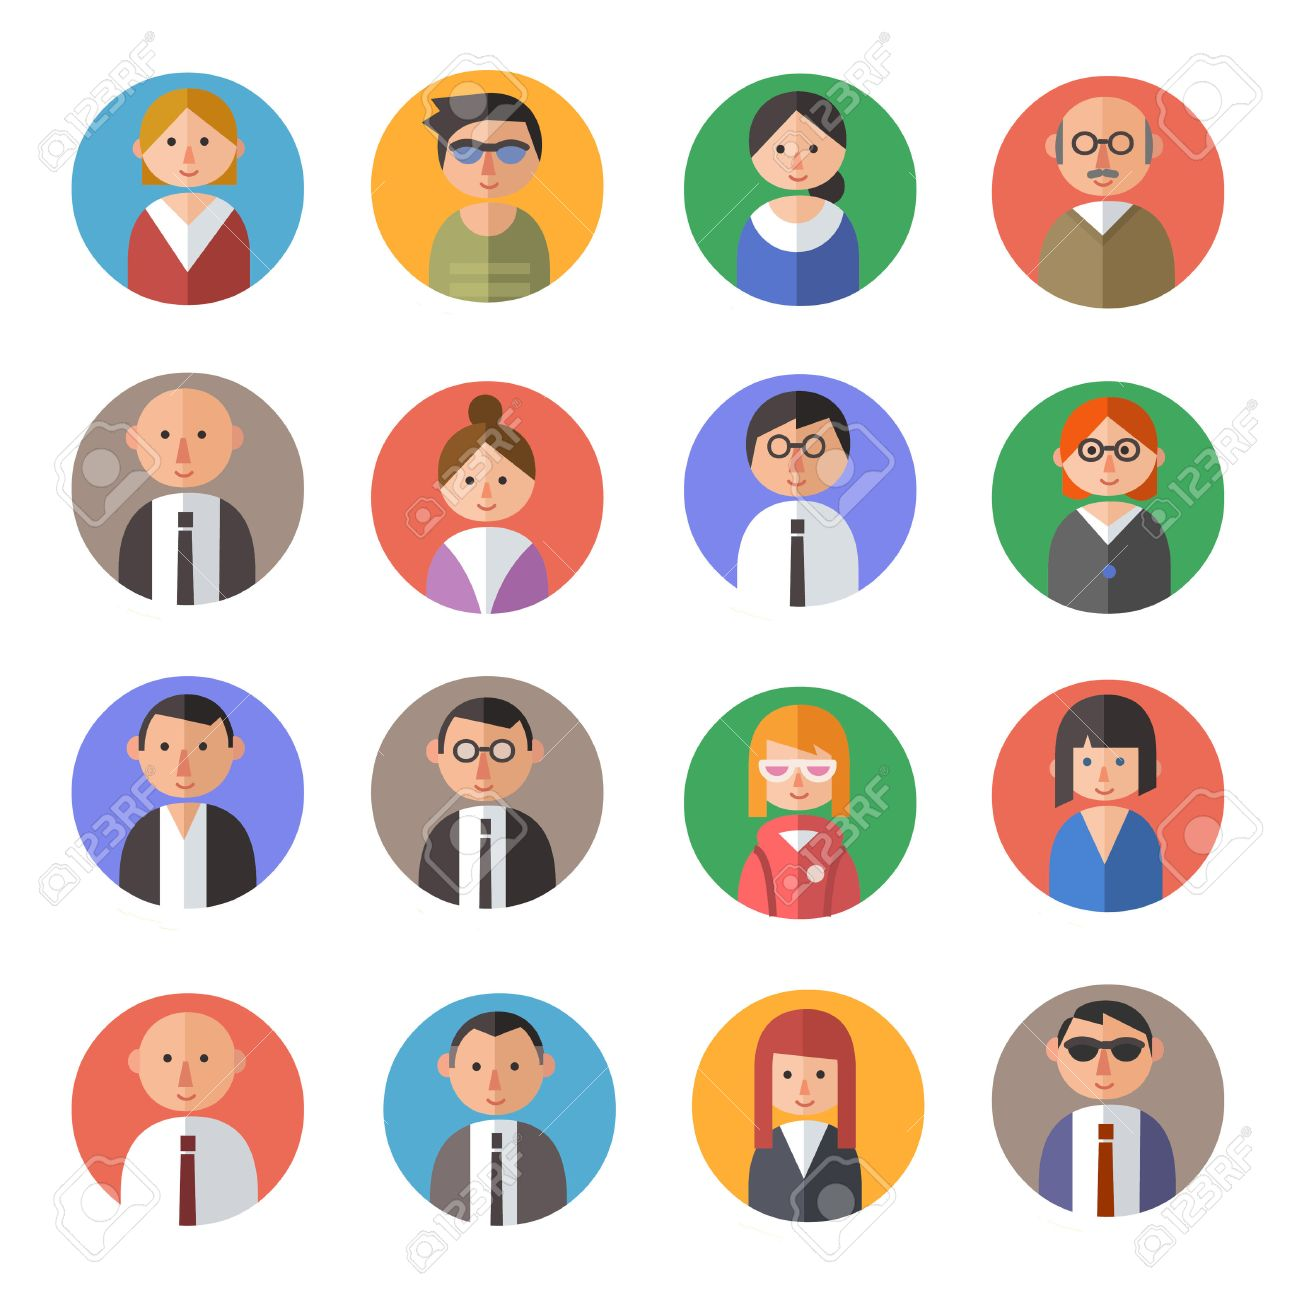 set of people avatars in flat material design style royalty free